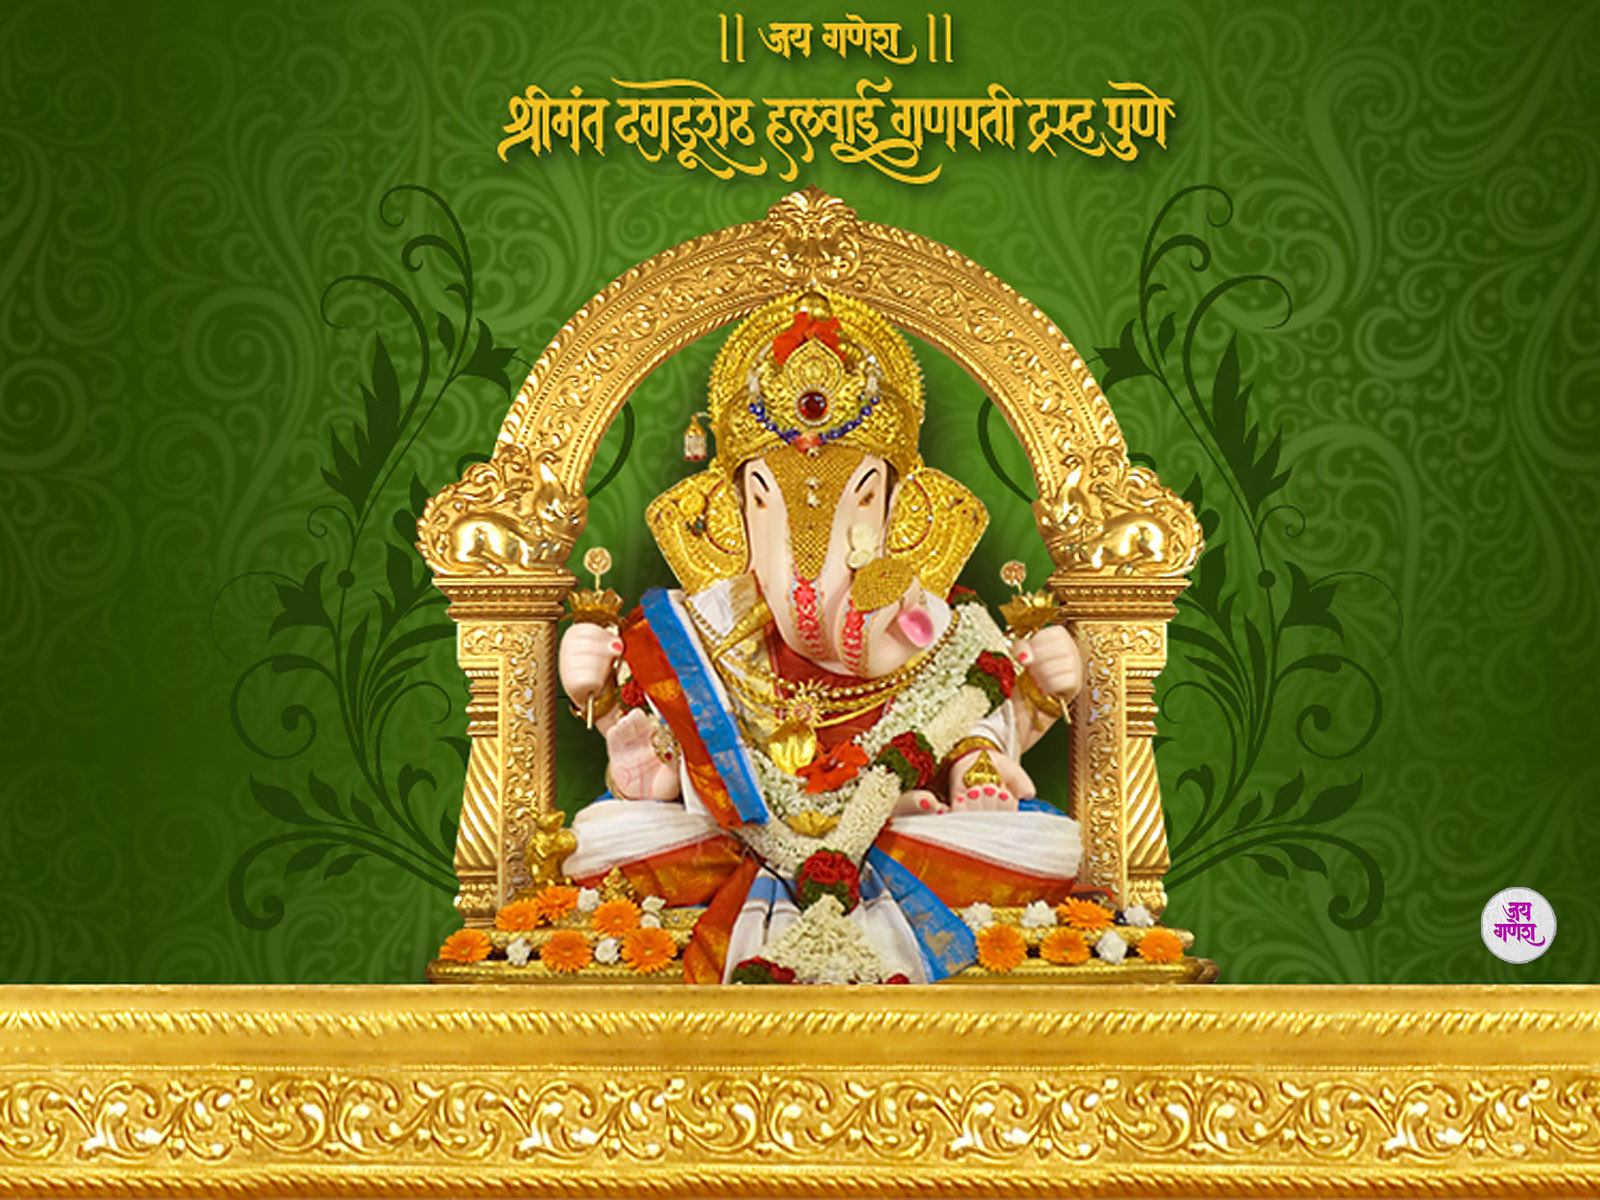 Dagdusheth-Ganpati-Images-wallpaper-wp4001464-1